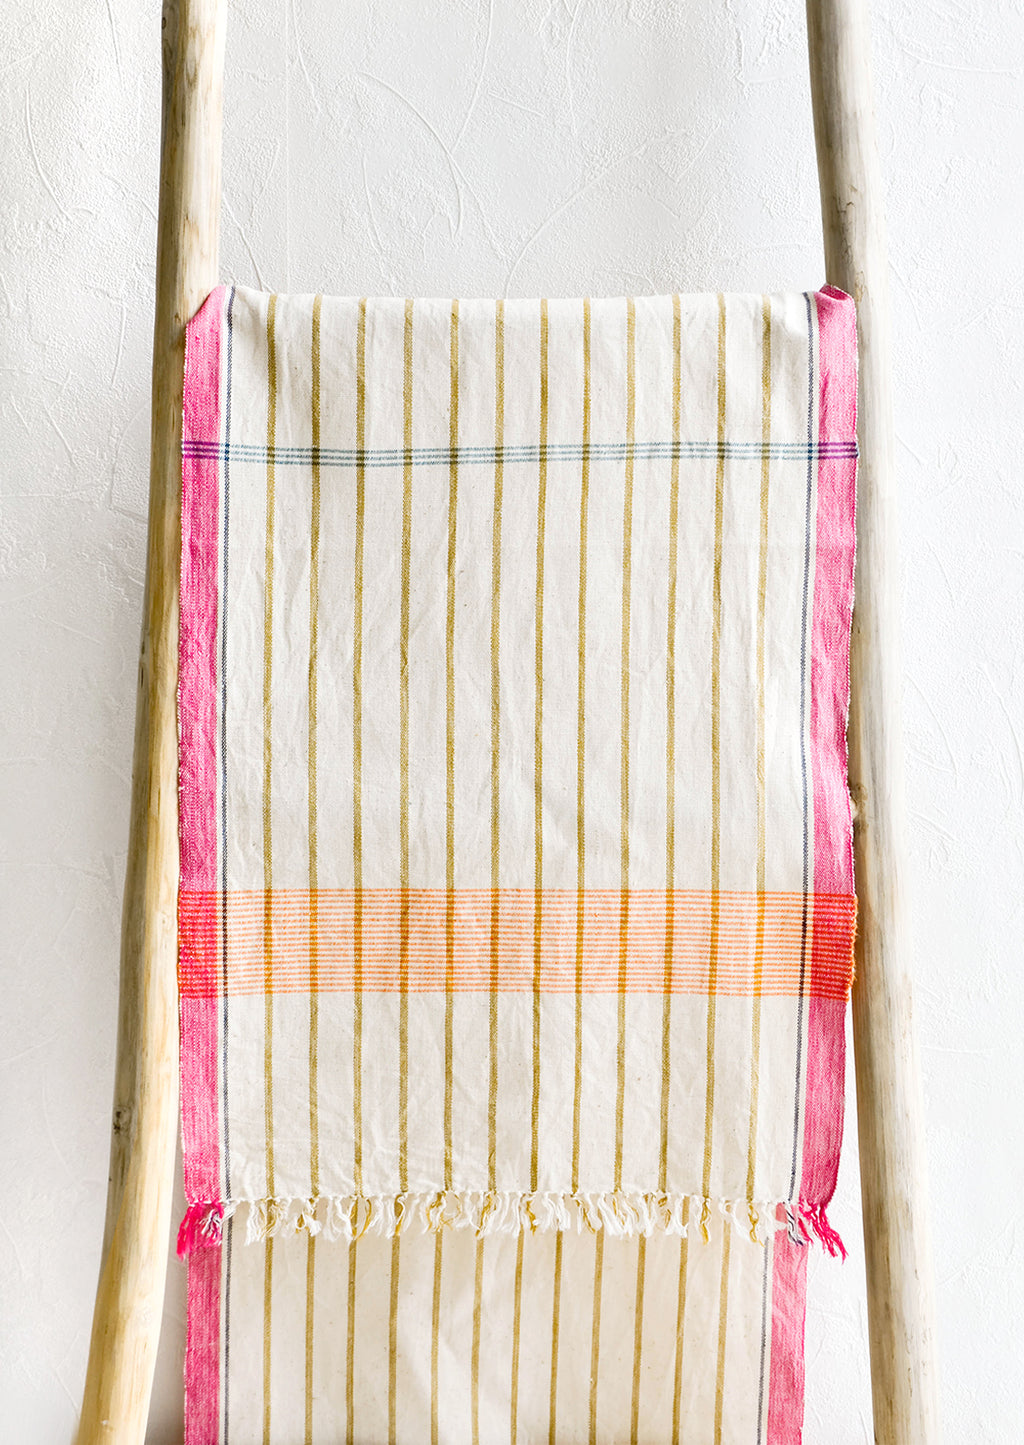 2: Brightly colored cotton table runner displayed on wooden ladder